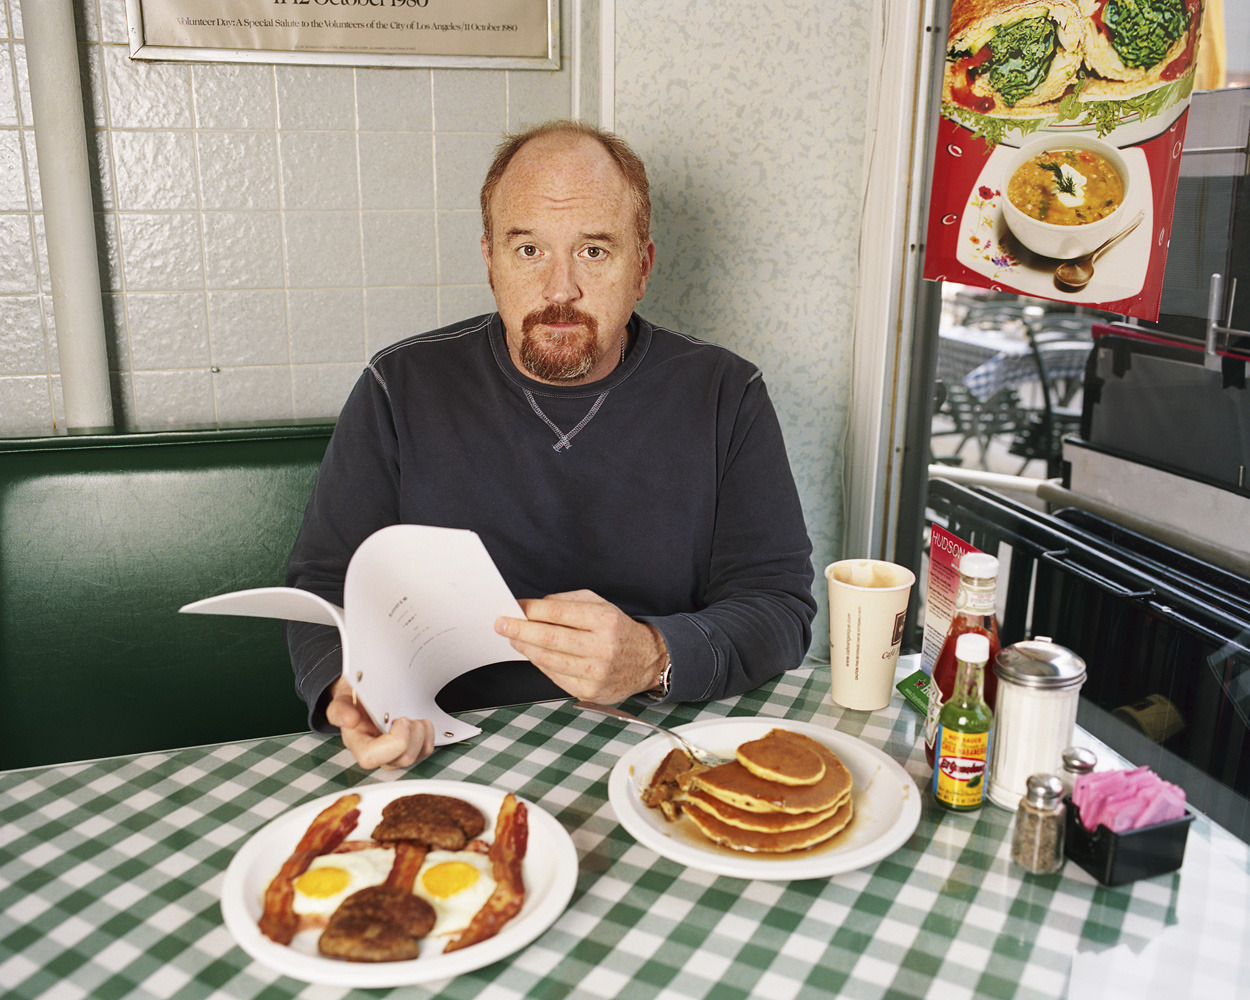 Above: Louis CK, photographed by Gillian Laub for TIME A great portrait captures the very essence of its subject, and this year, TIME continued its long legacy of storytelling with a number of compelling photographs of newsmakers, from politicians and businessmen to comedians and Oscar winners. Check out TIME's best portraits of 2012.